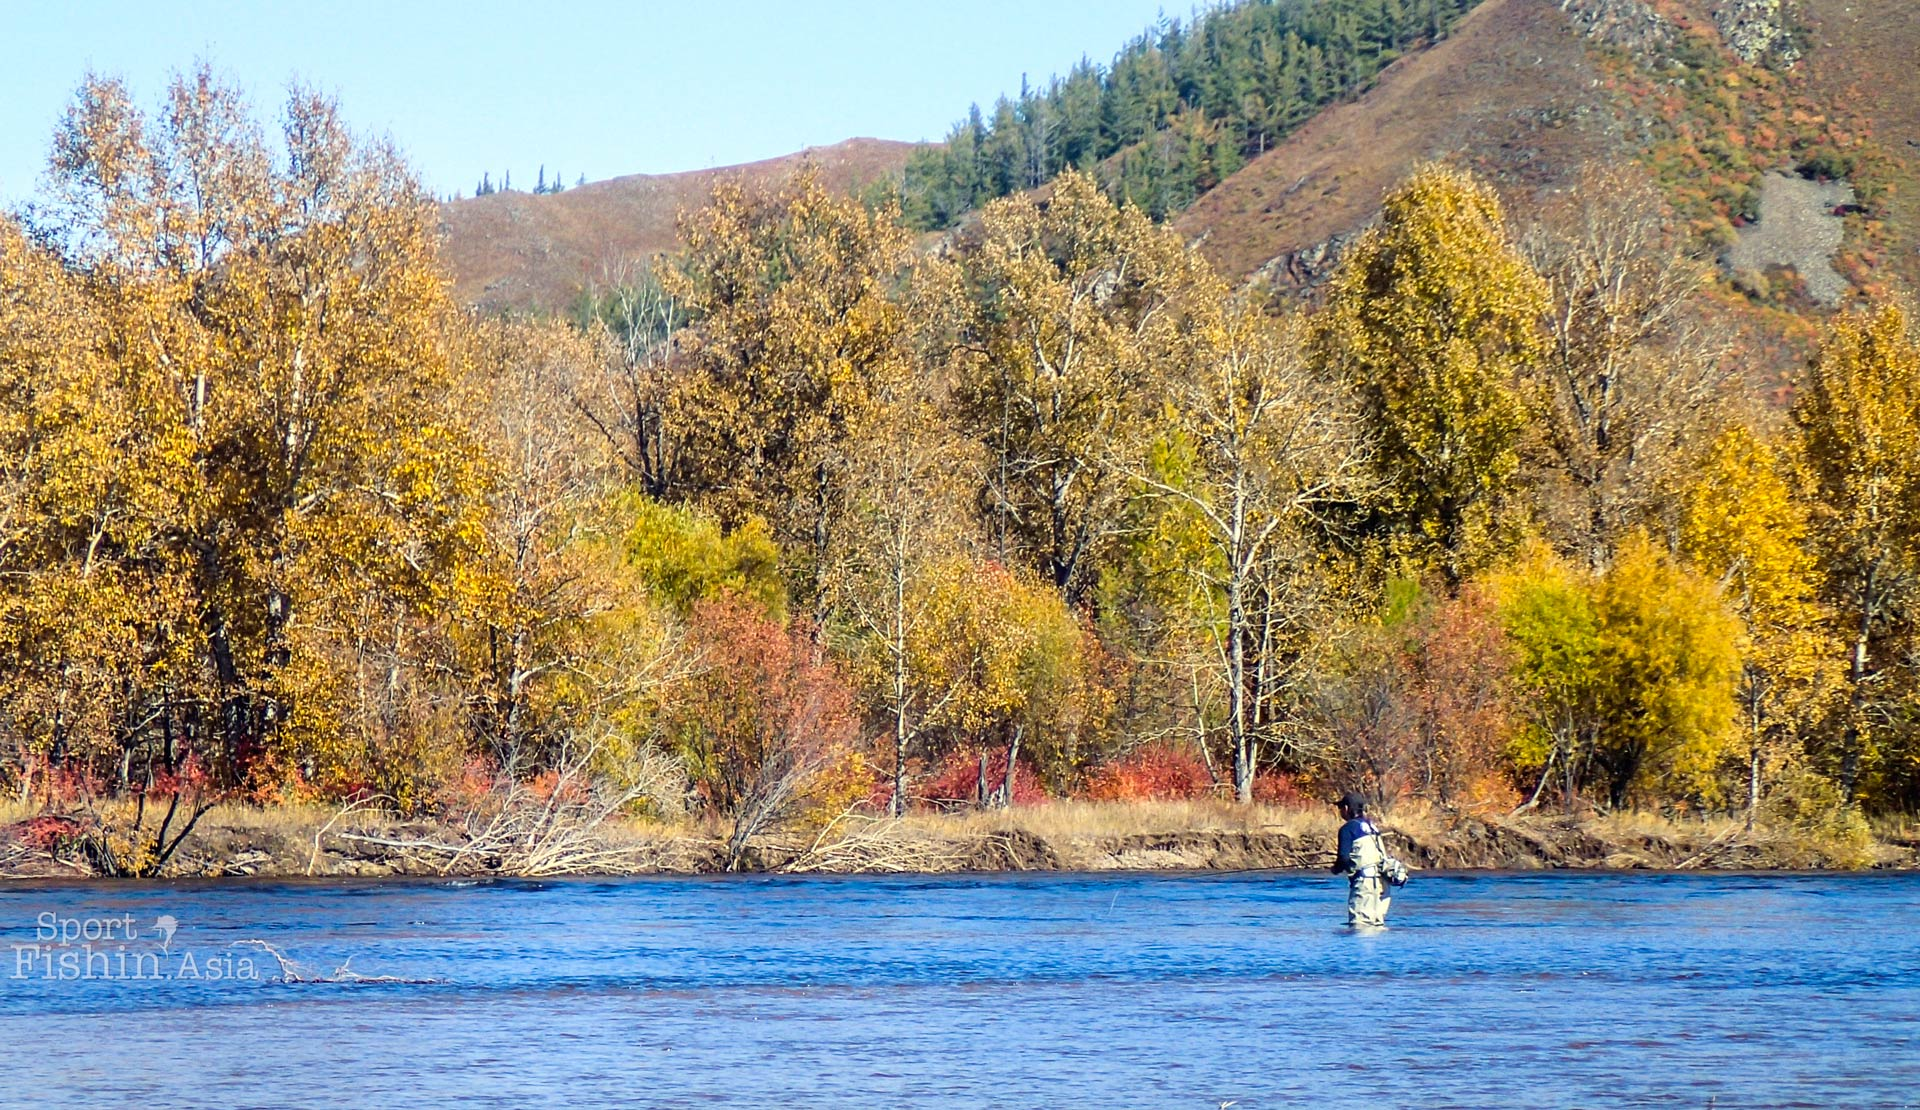 mongolia-fly-fishing-autumn-river-scenery-landscape_130920_6698_1920x1080